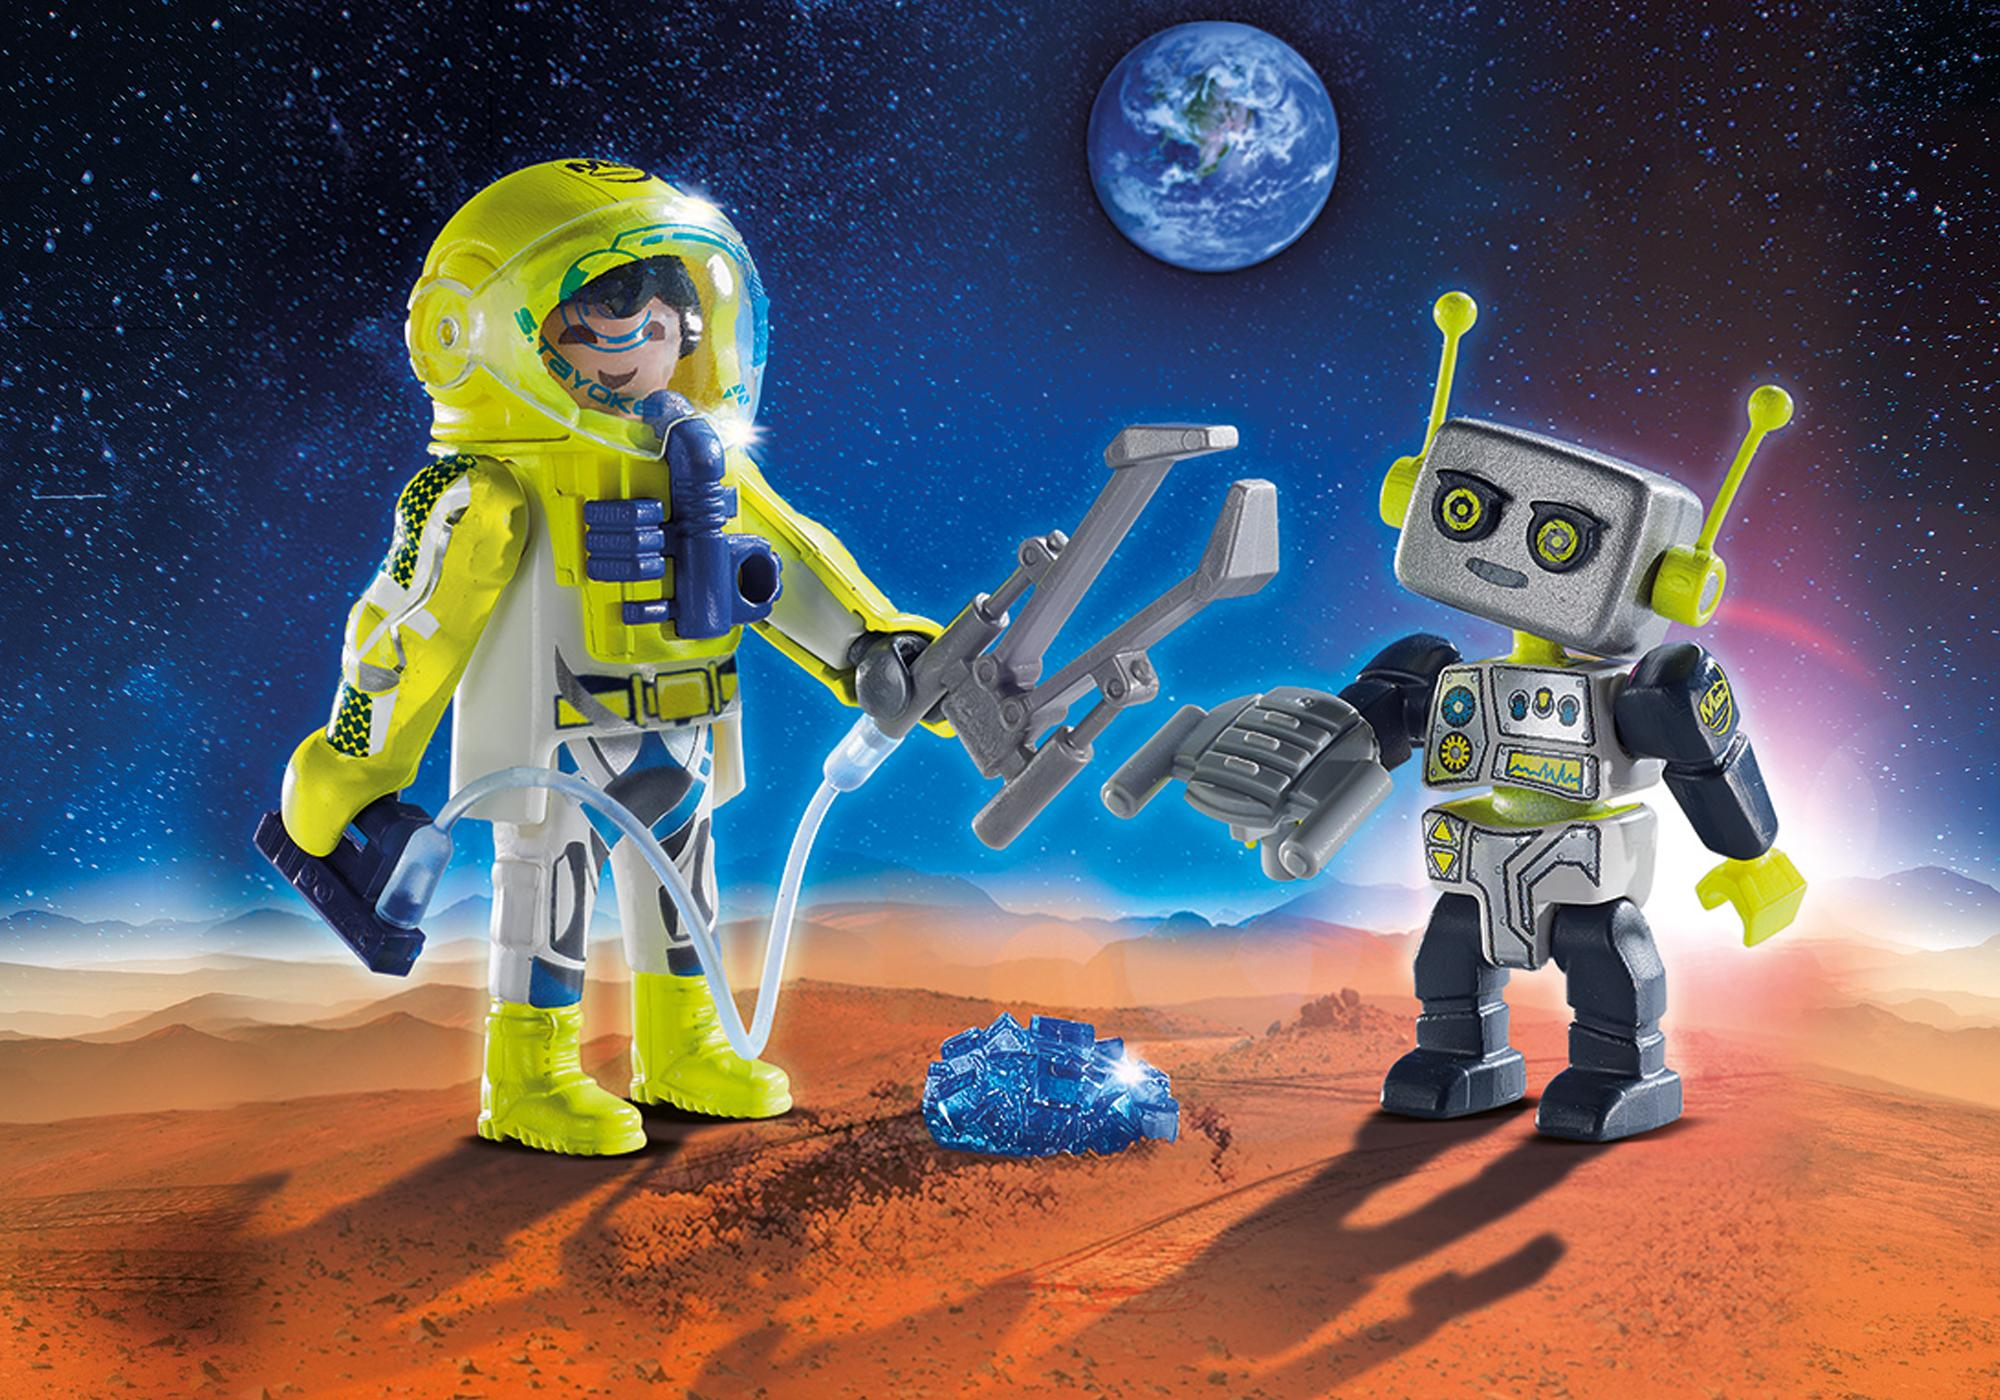 http://media.playmobil.com/i/playmobil/9492_product_detail/Duo Pack Astronaut und Roboter